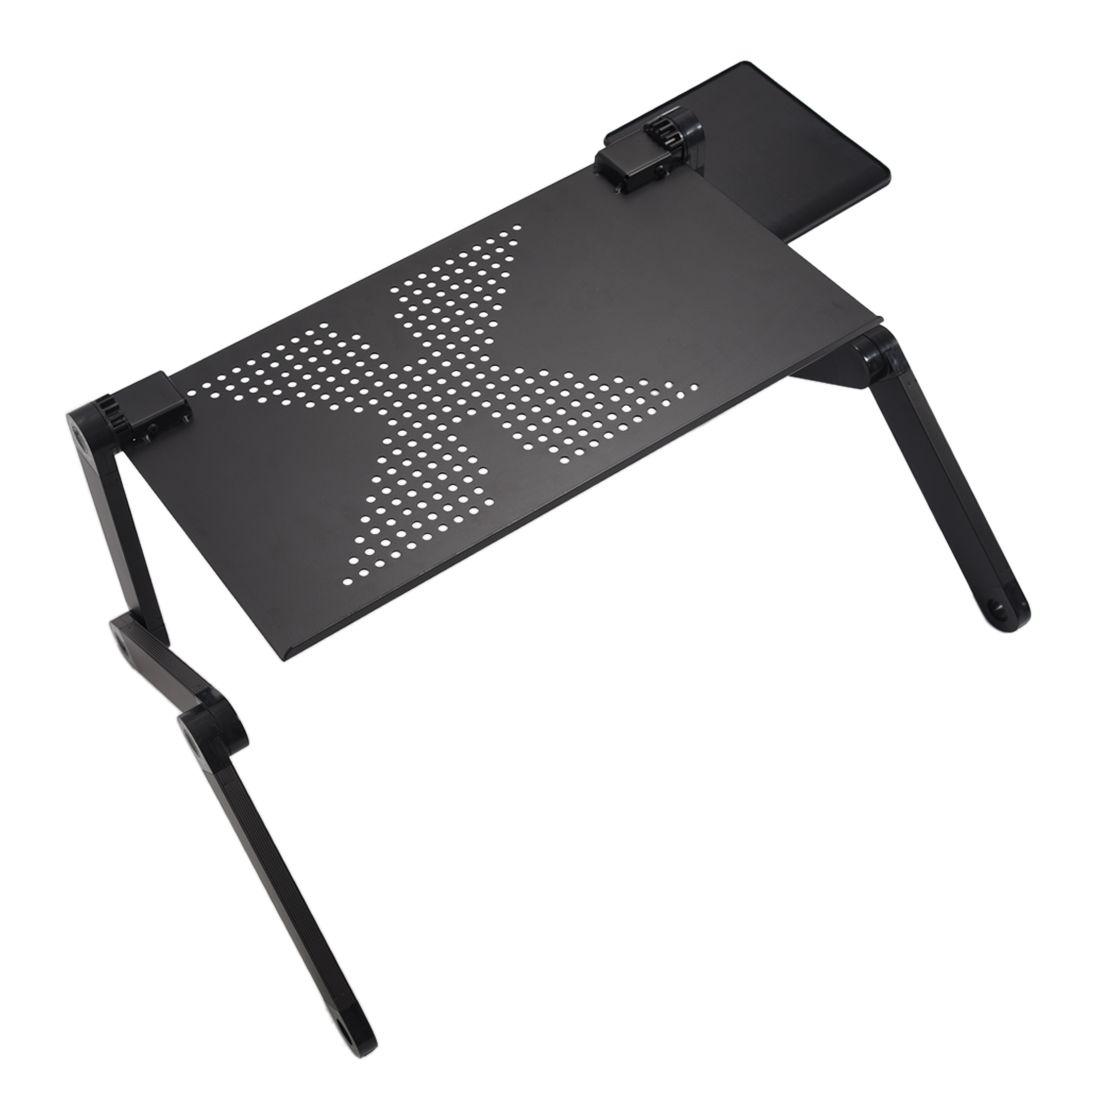 Portable foldable adjustable laptop desk computer table stand tray multi functional ergonomic mobile laptop table stand for bed portable sofa laptop table foldable notebook desk with mouse pad geotapseo Gallery